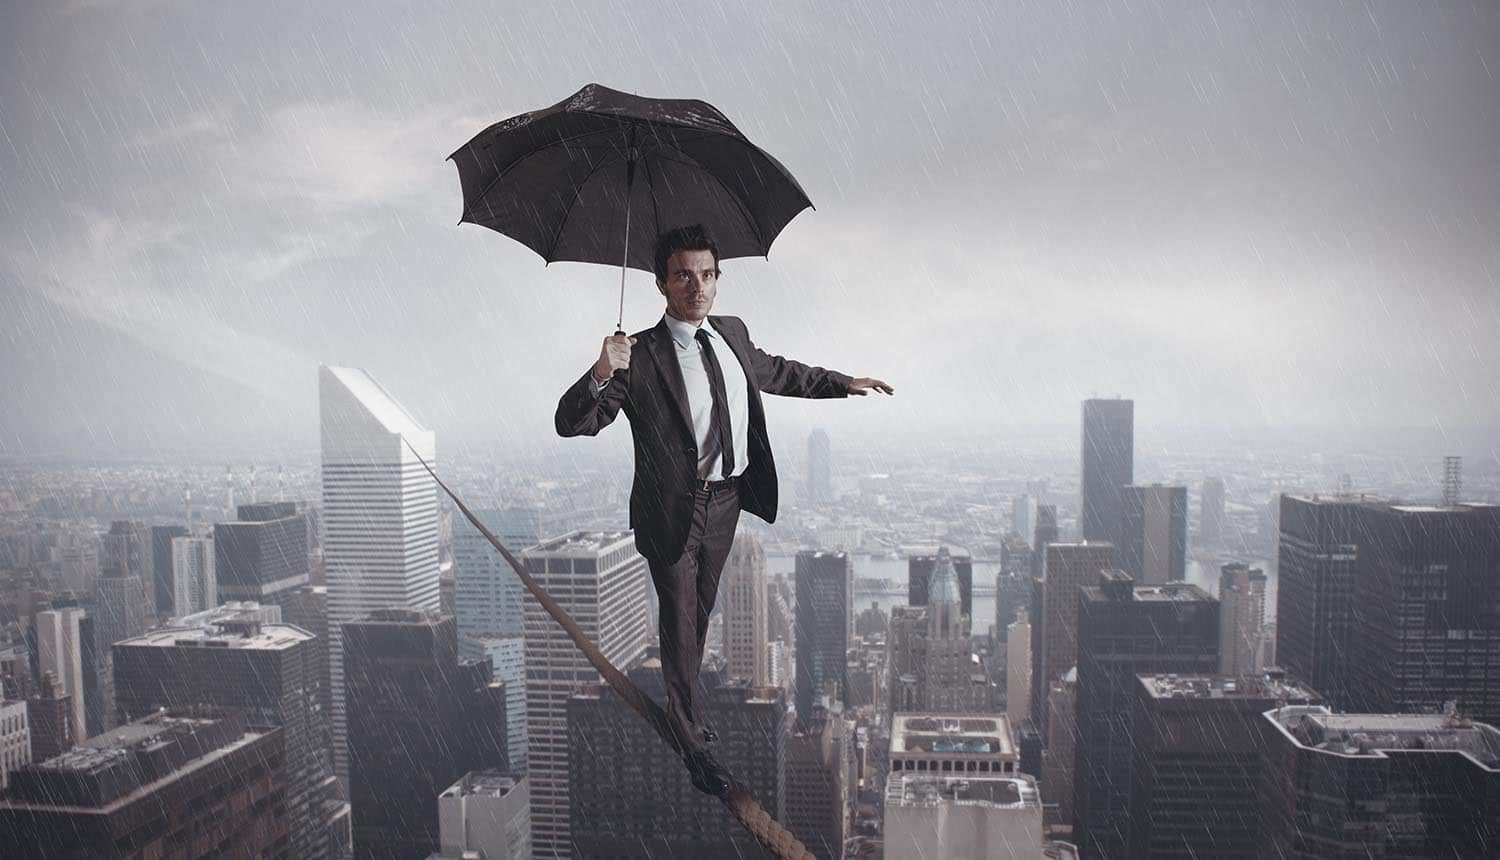 Privacy leader balancing on a tight rope carrying umbrella to shield against the rain showing the difficulty of balance and integration